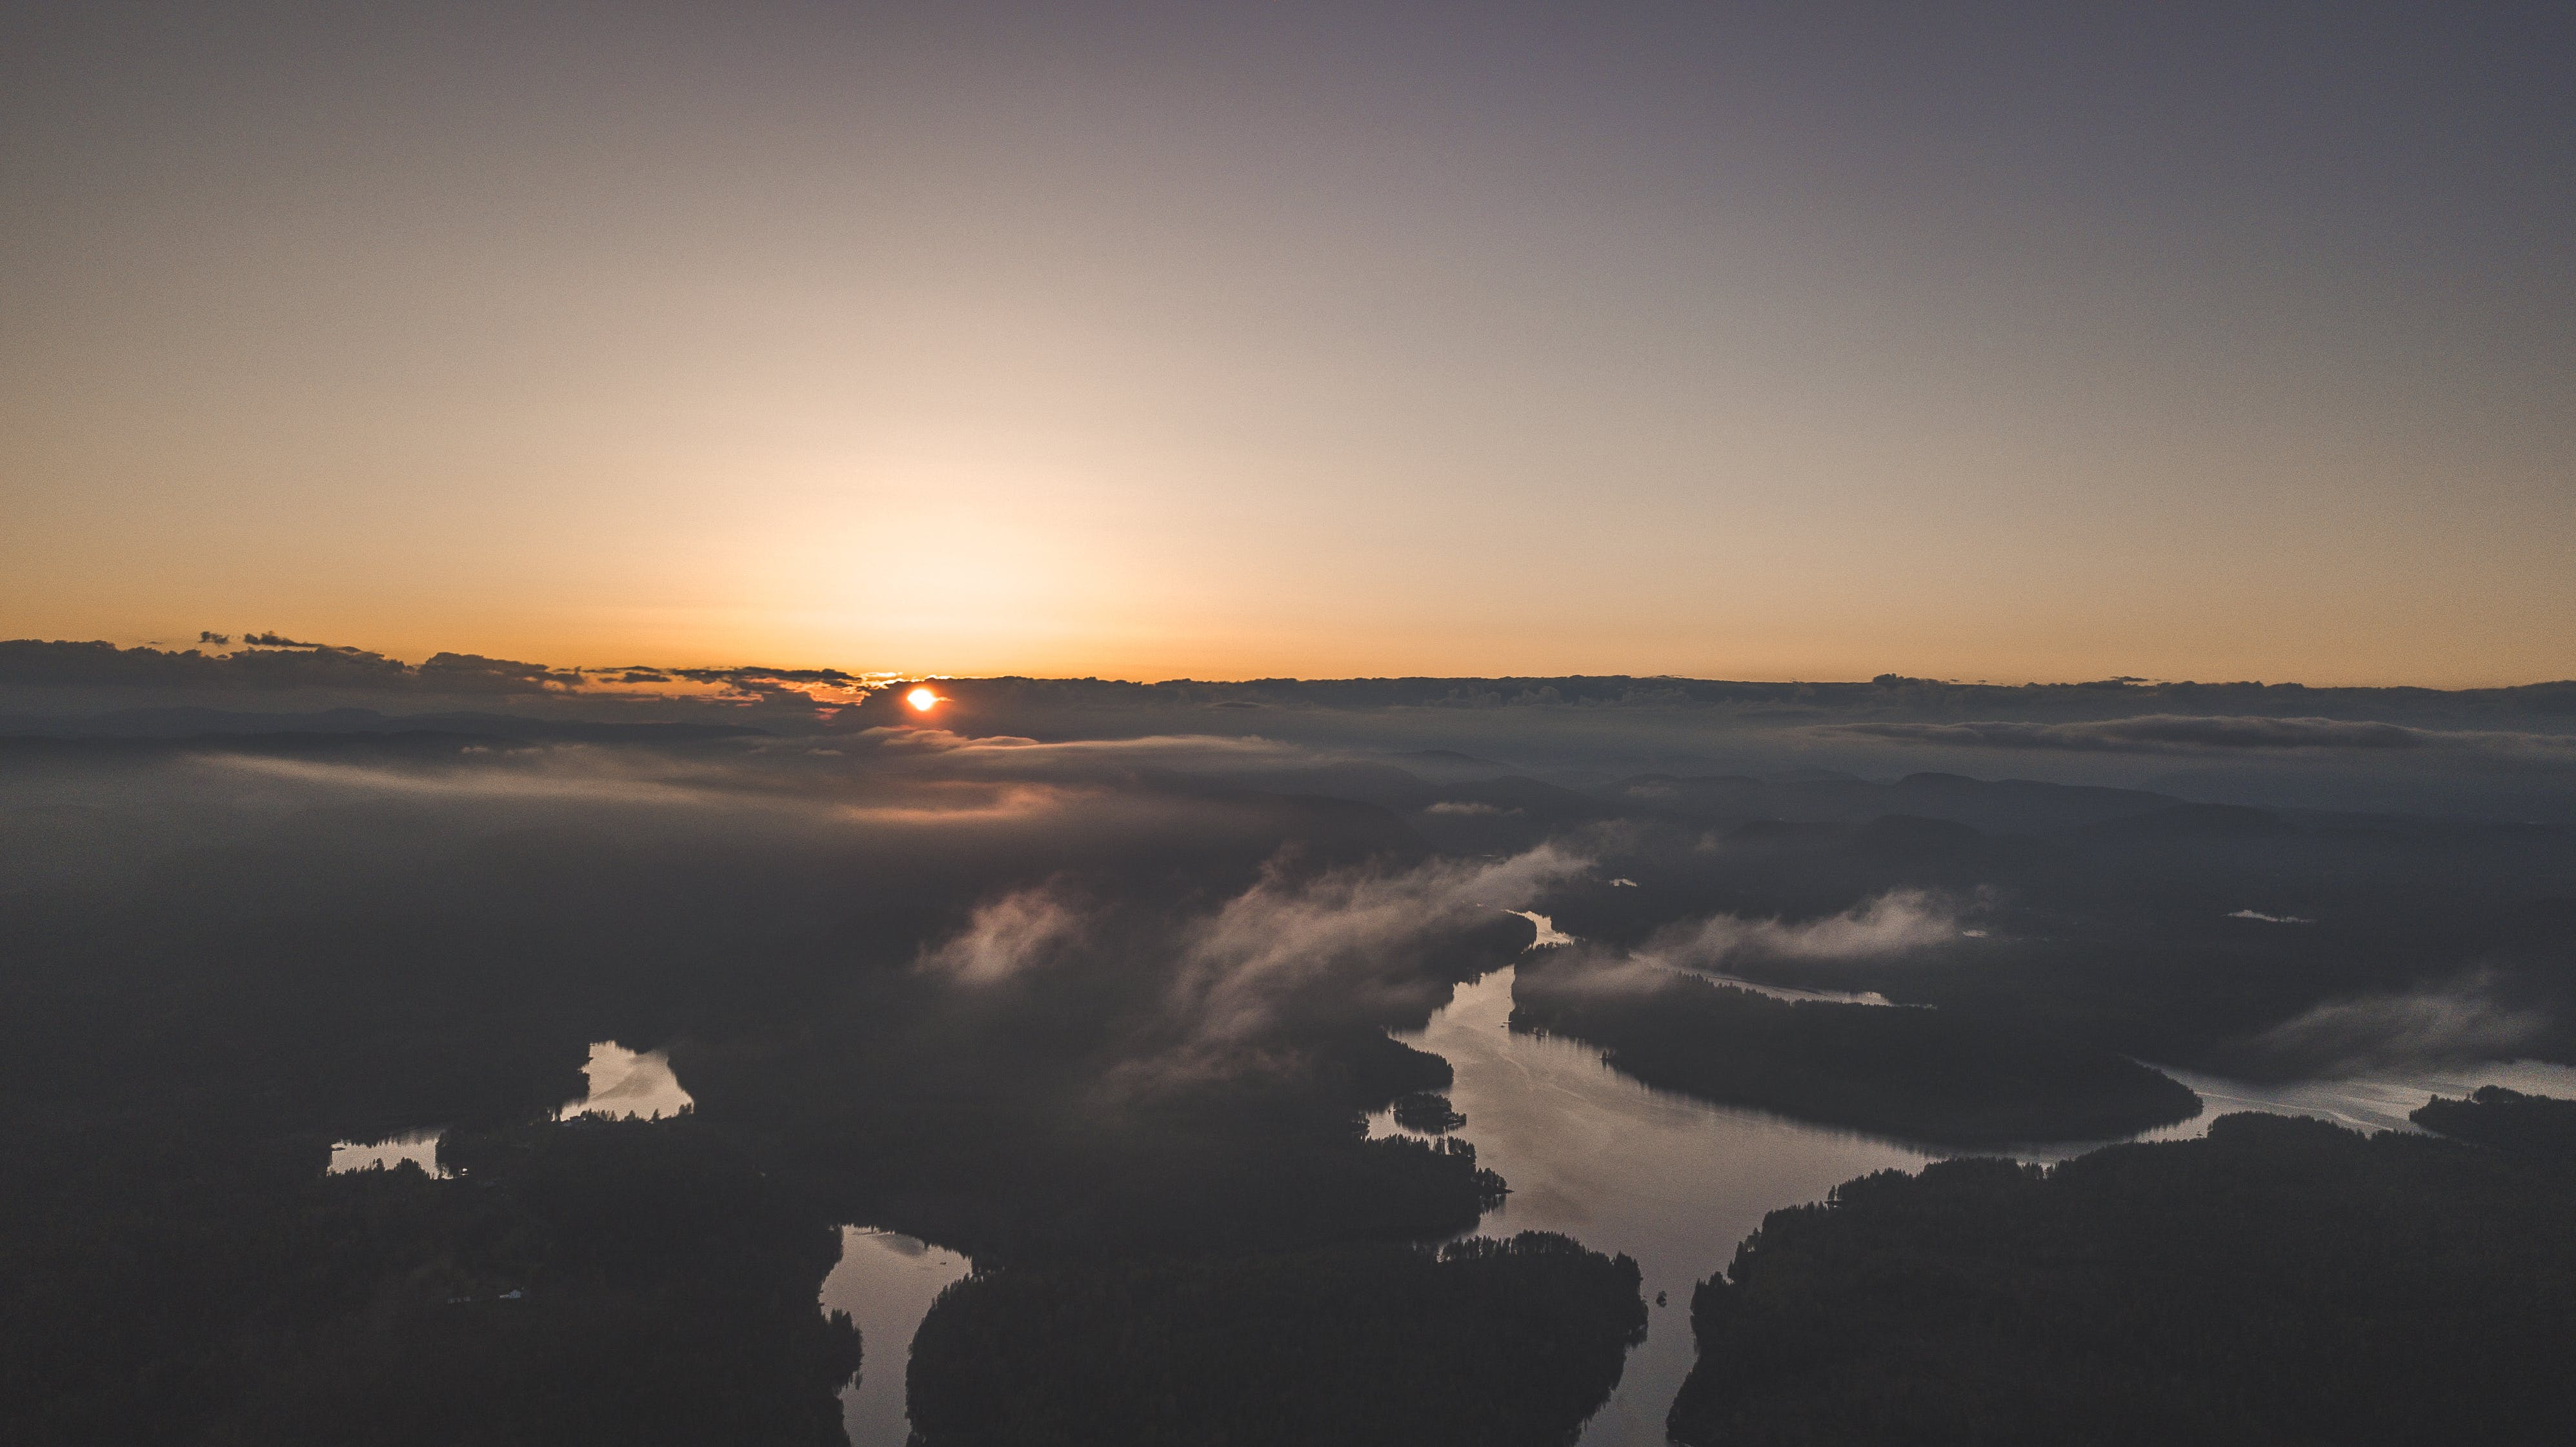 Sea of Clouds during Sunset